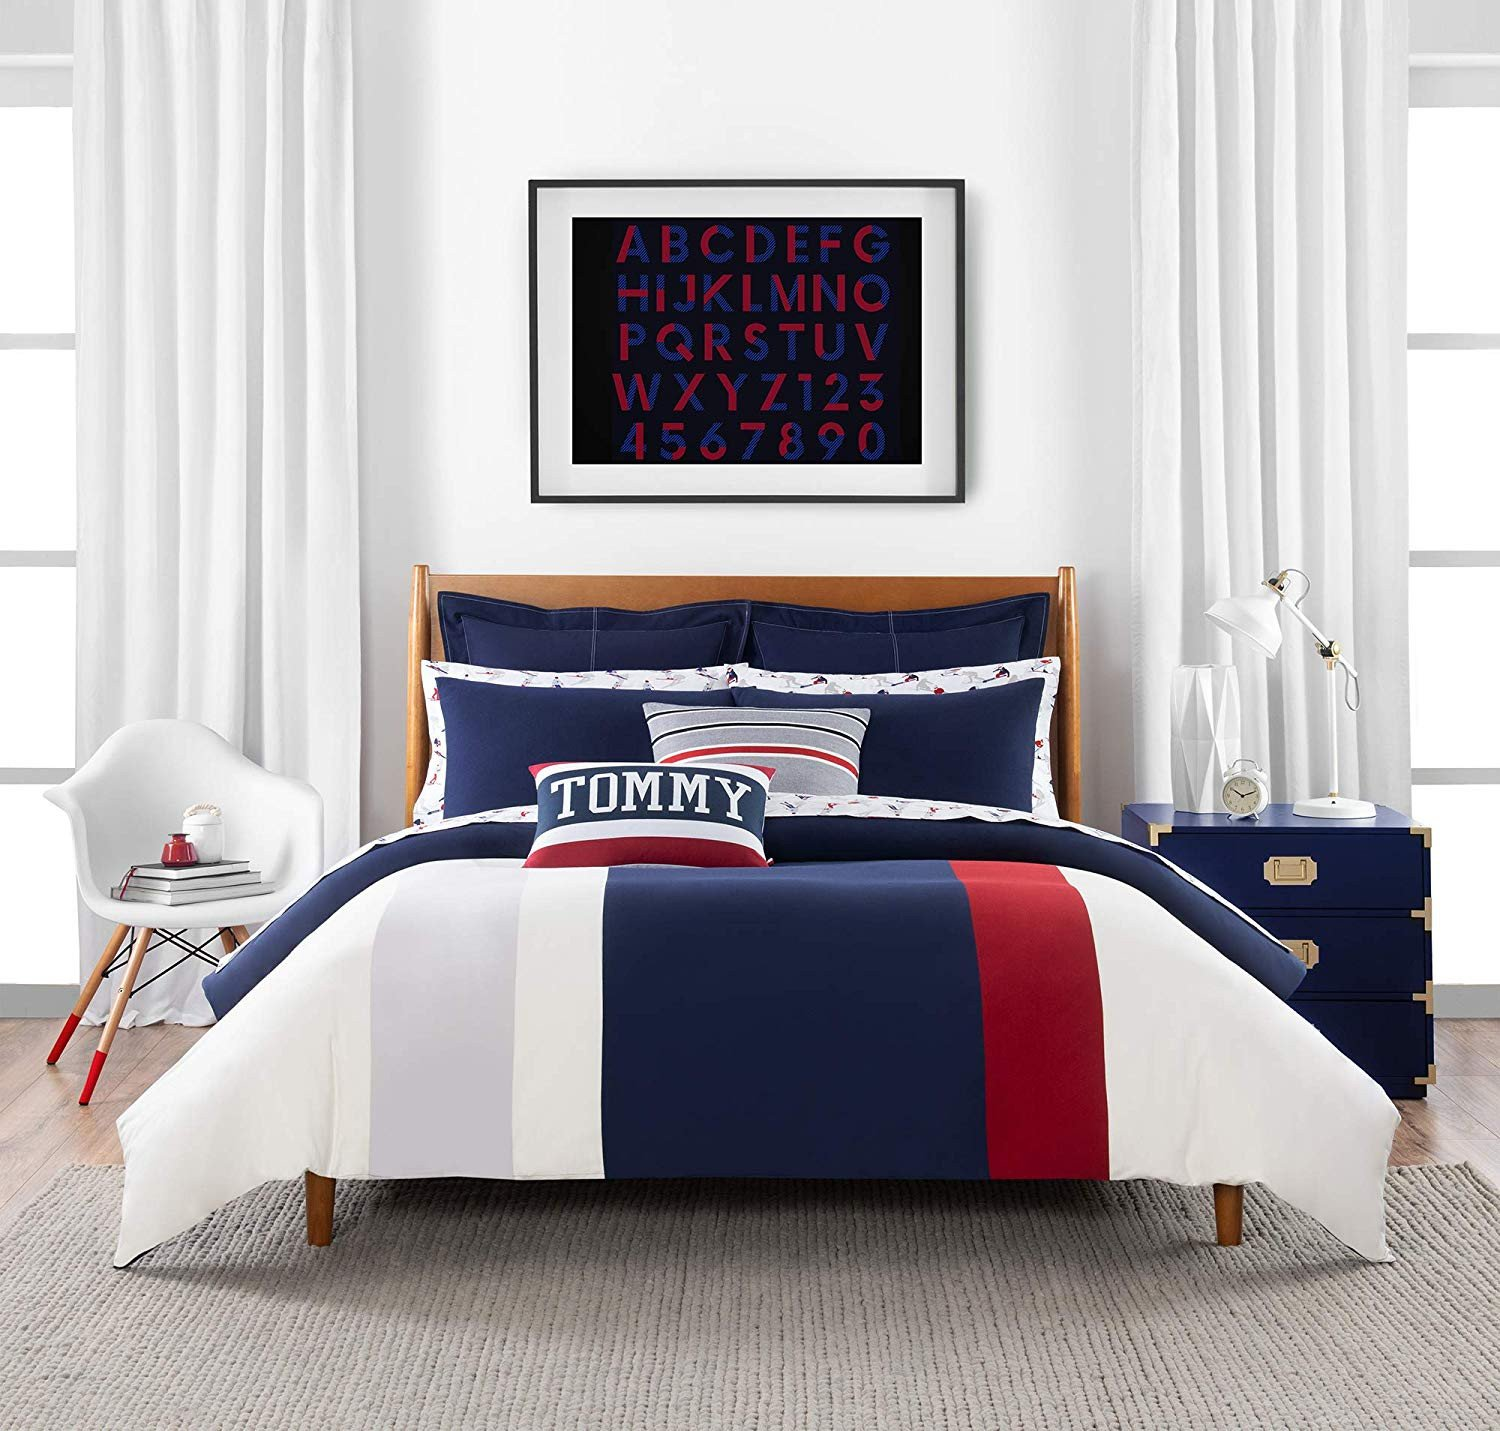 Rooms to Go Bedroom Set King Lovely Amazon tommy Hilfiger Clash Of 85 Stripe Duvet Cover